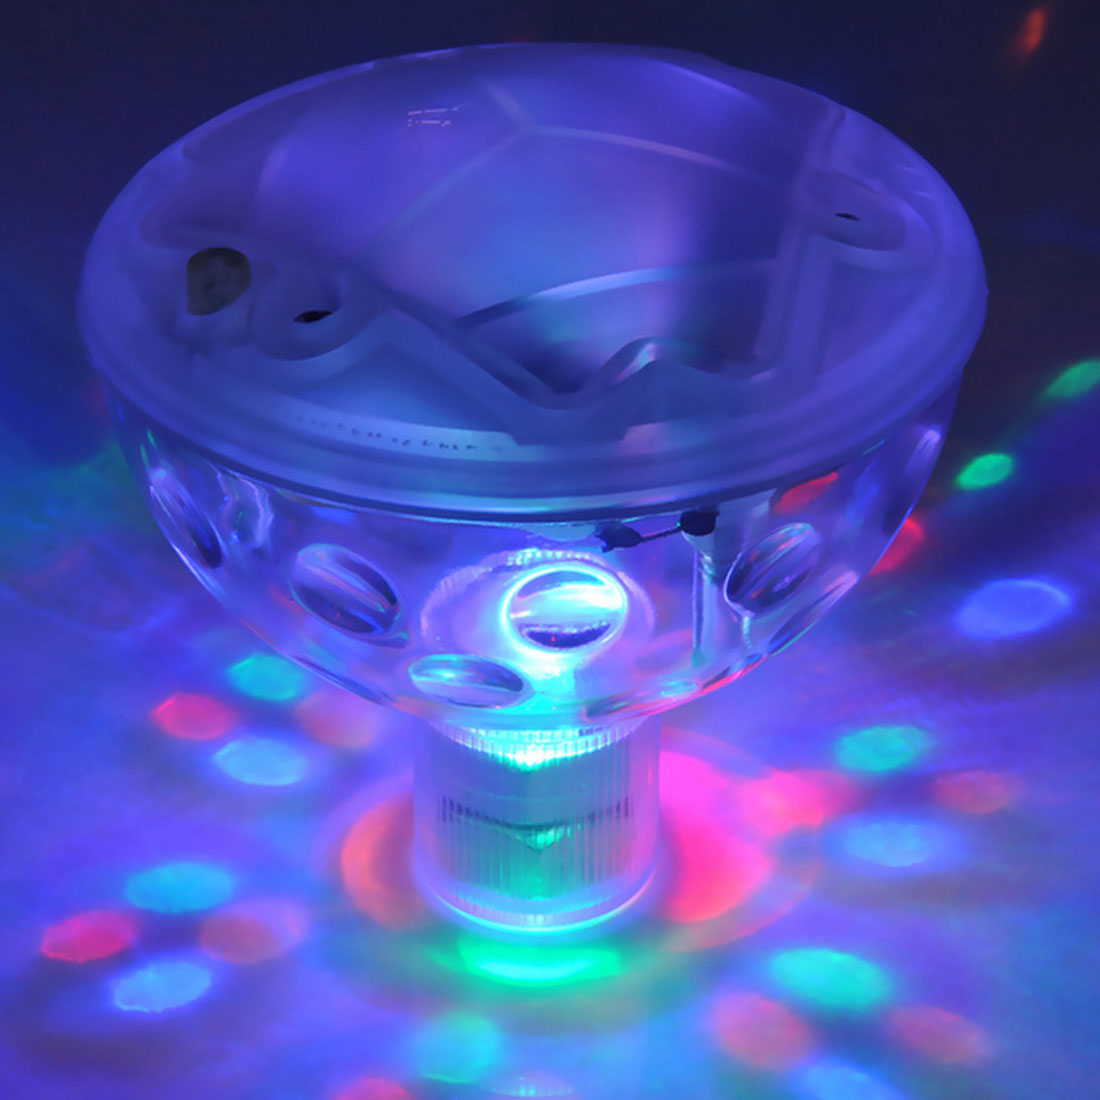 Underwater Light Floating Underwater LED Disco Light Glow Show Swimming Pool Hot Tub Spa Lamp